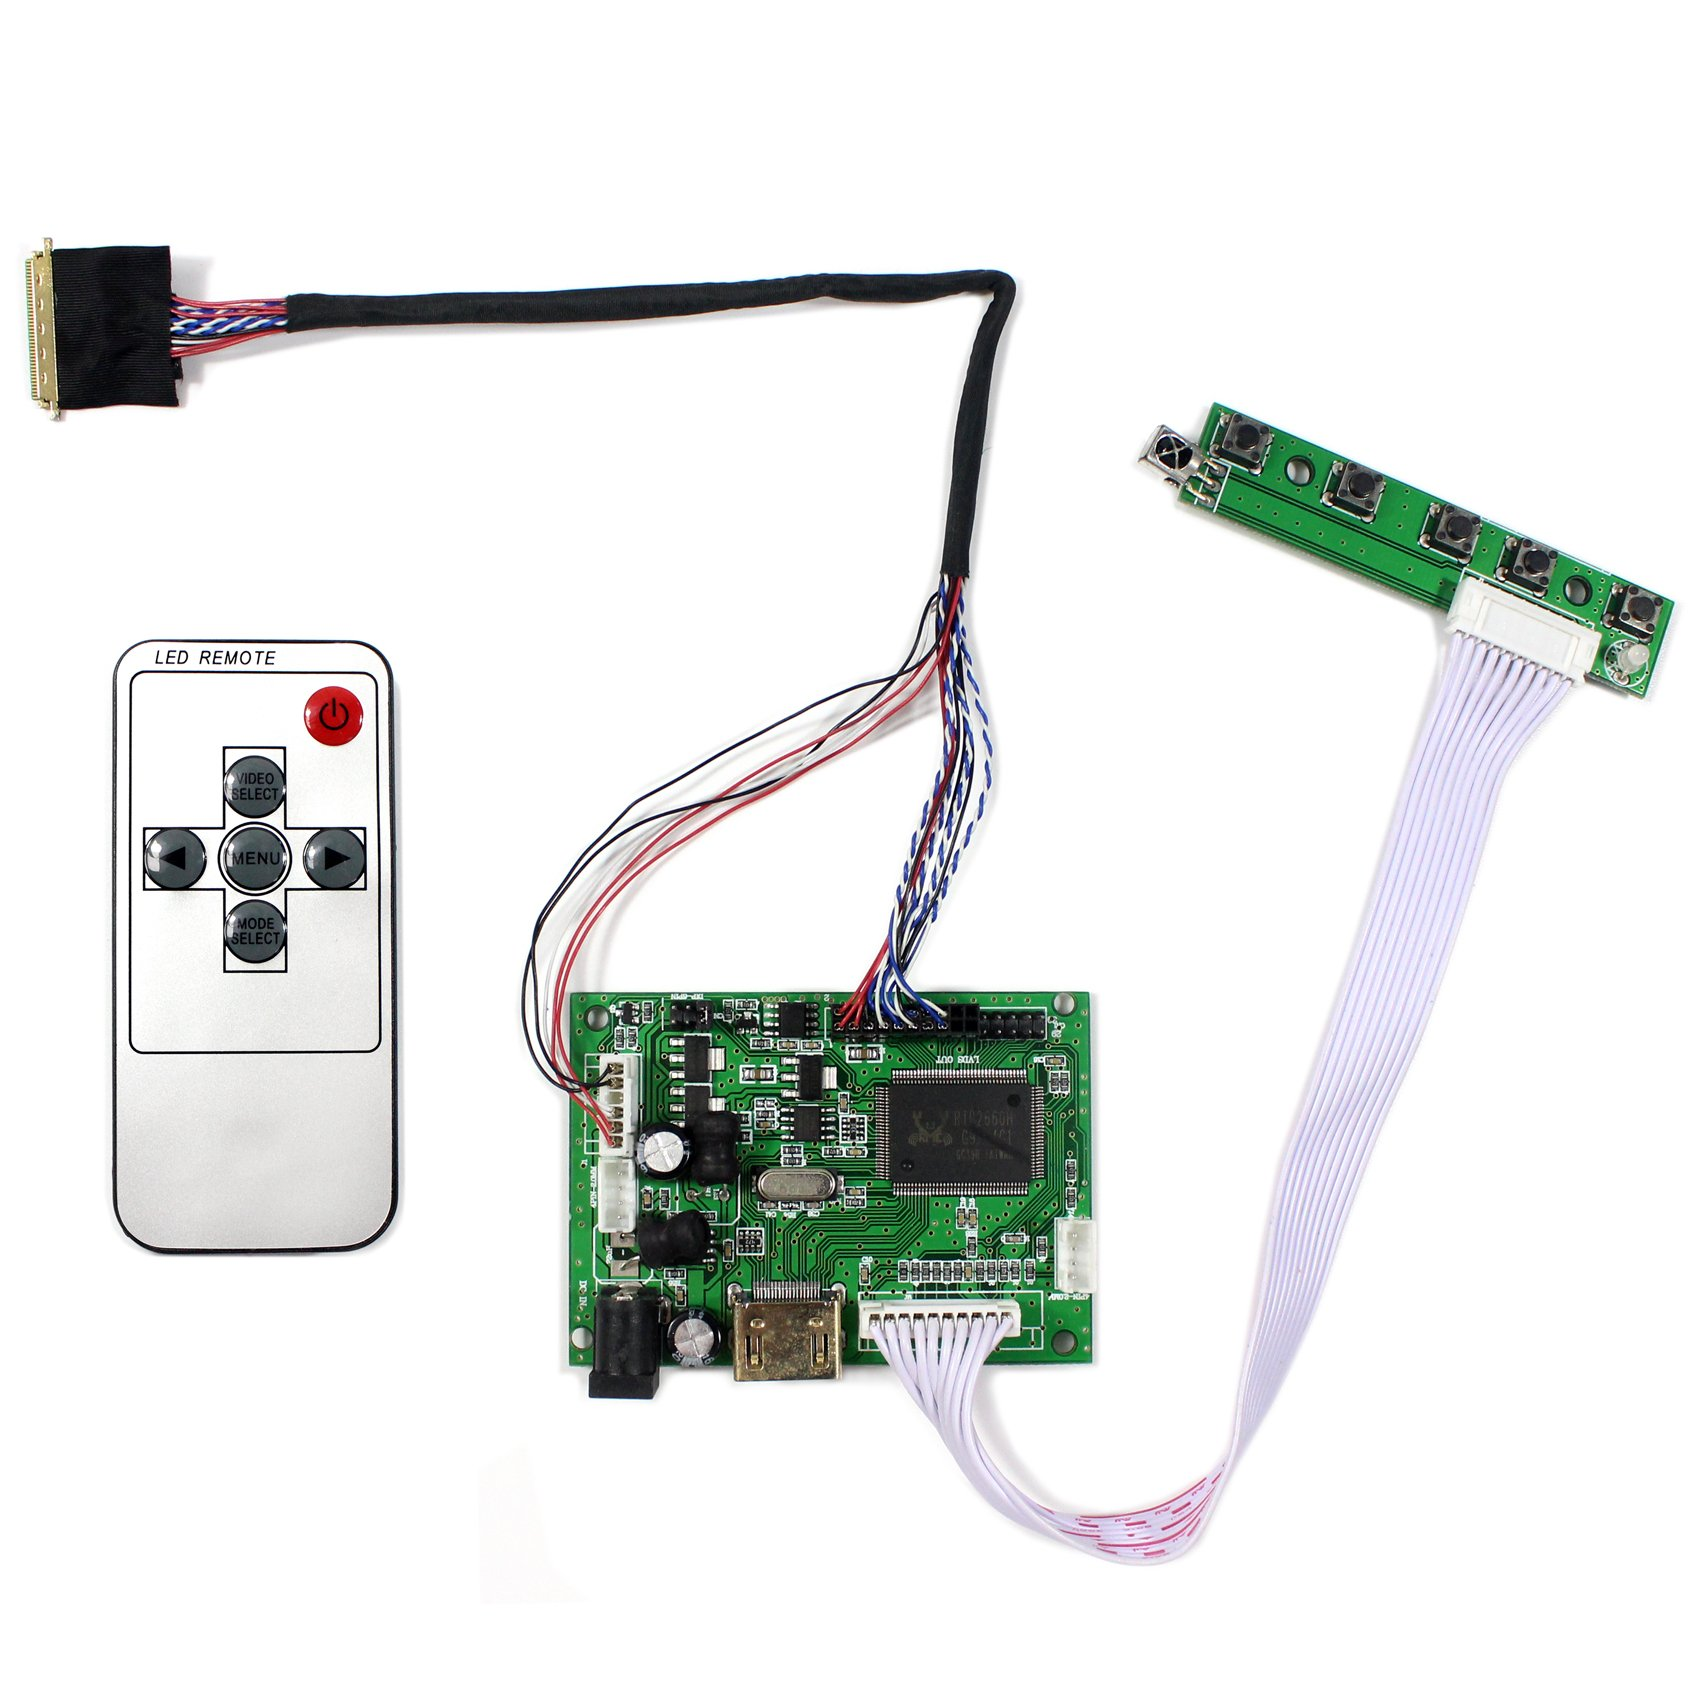 VSDISPLAY HDMI LCD Controller Board Work For 14'' 15.6'' LTN140AT02 LP156WH4 B156XW02 1366x768 40Pin LCD Panel by VSDISPLAY (Image #1)